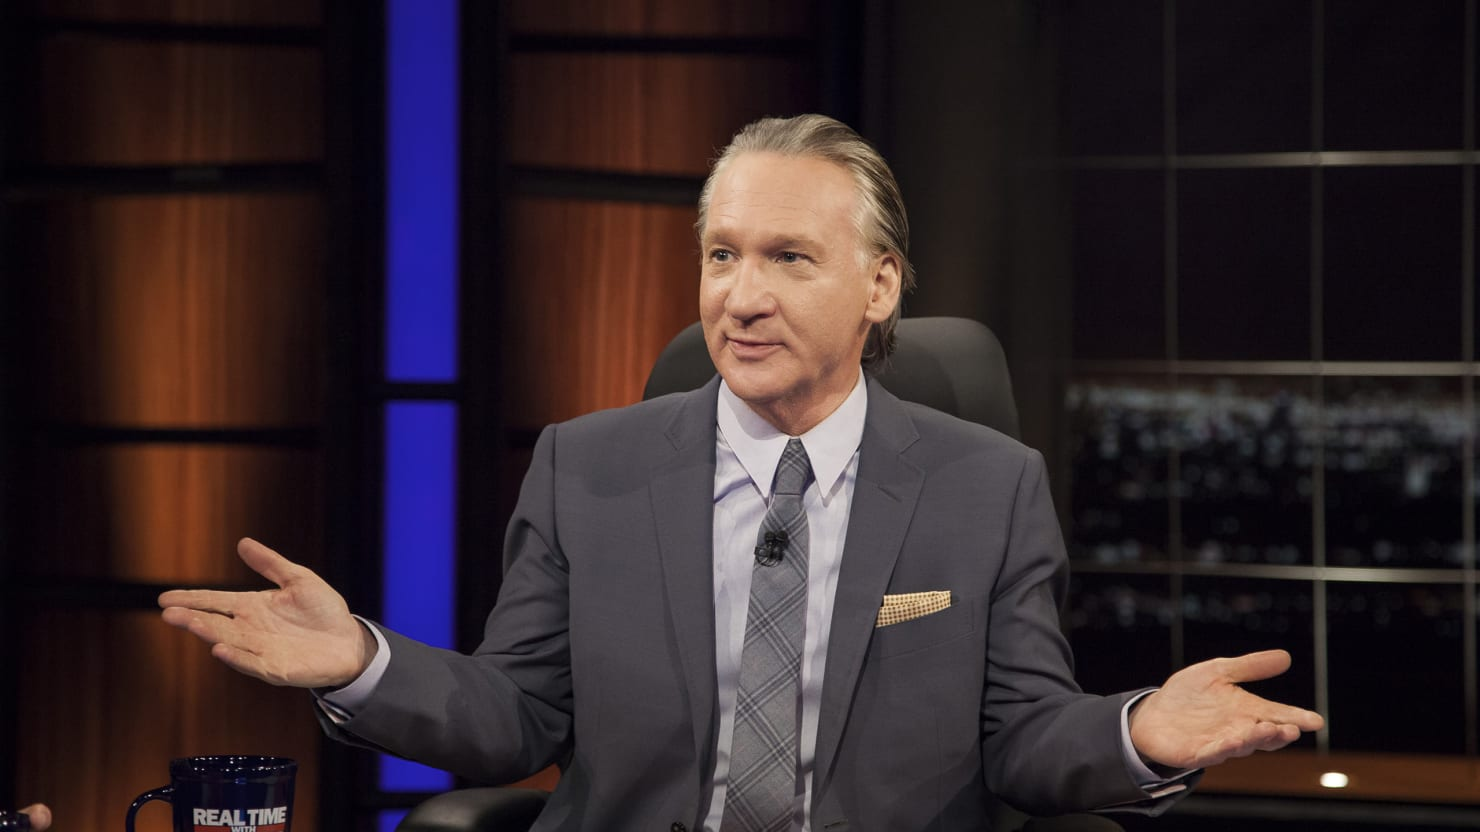 Bill Maher: The Oscars' Diversity Problem Is 'Racist' Asians' Fault